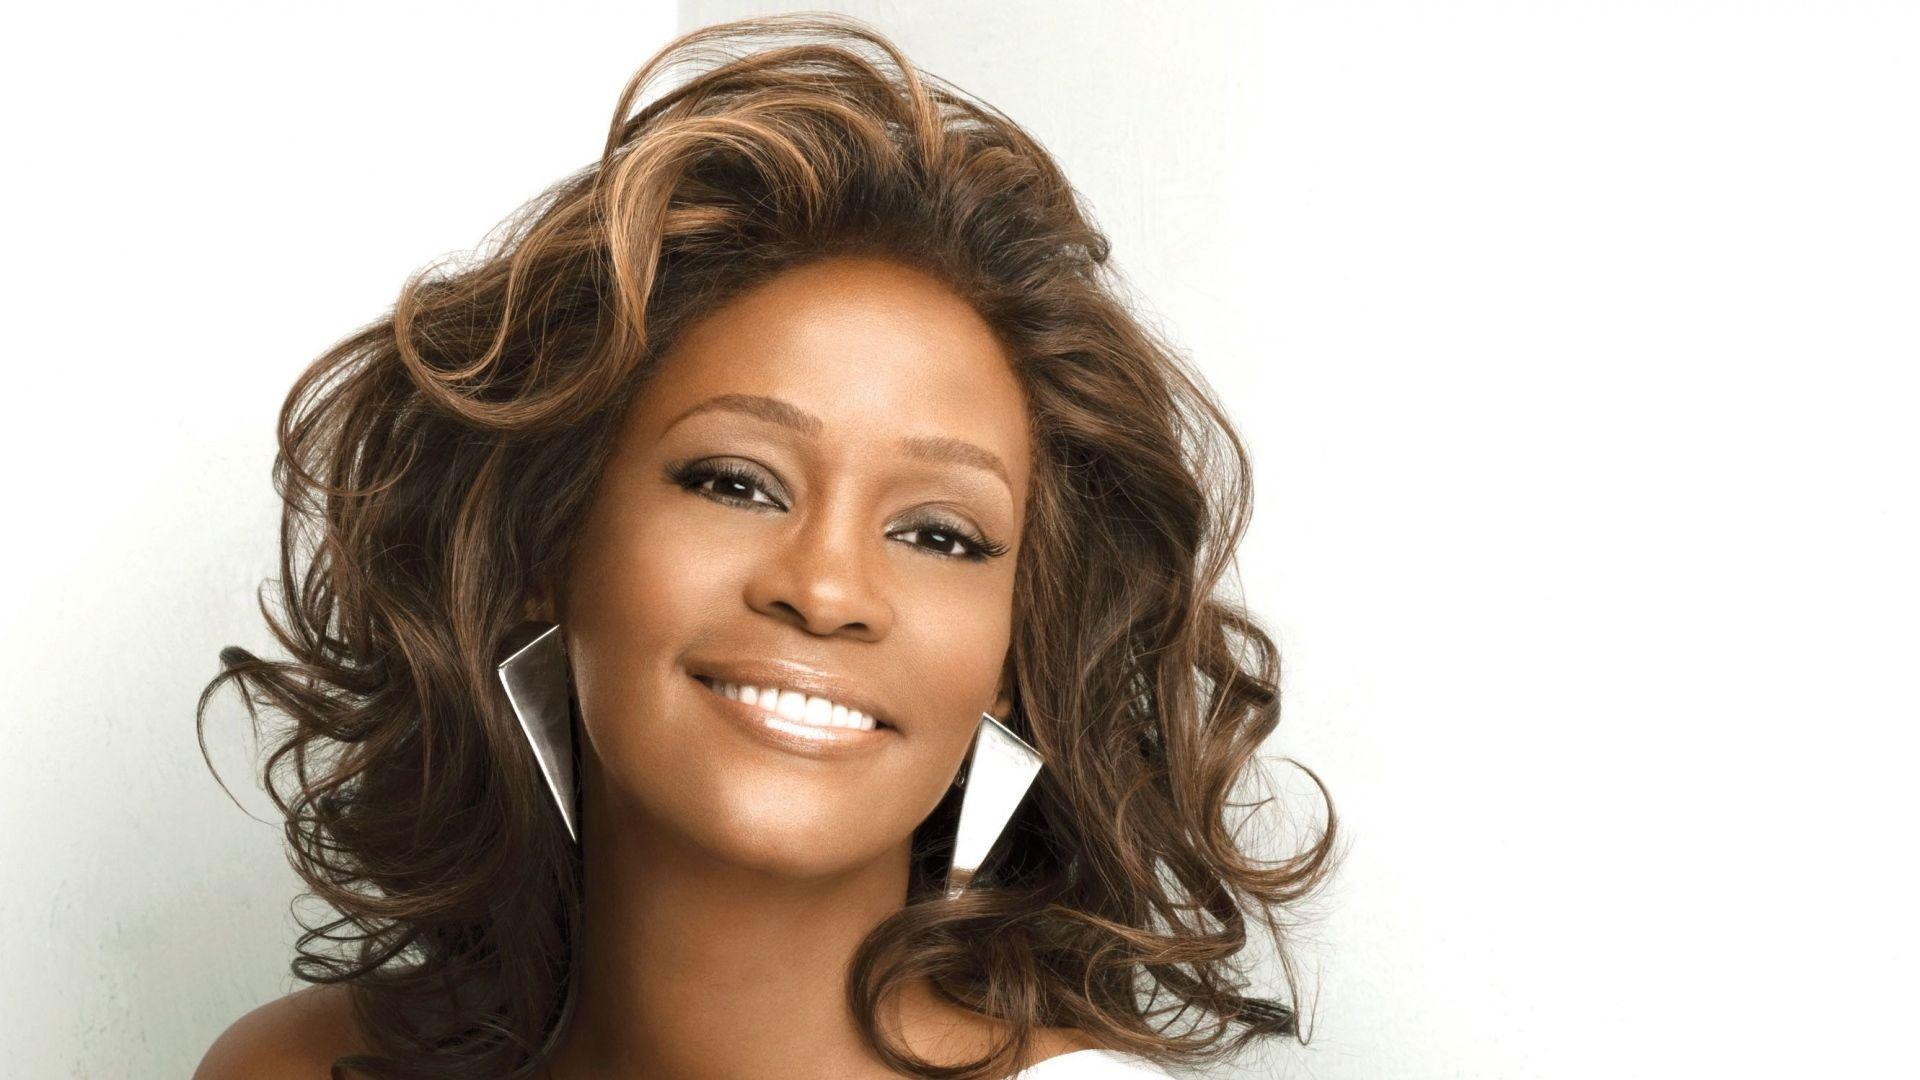 Download Wallpapers 1920x1080 Whitney houston, Singer, Single